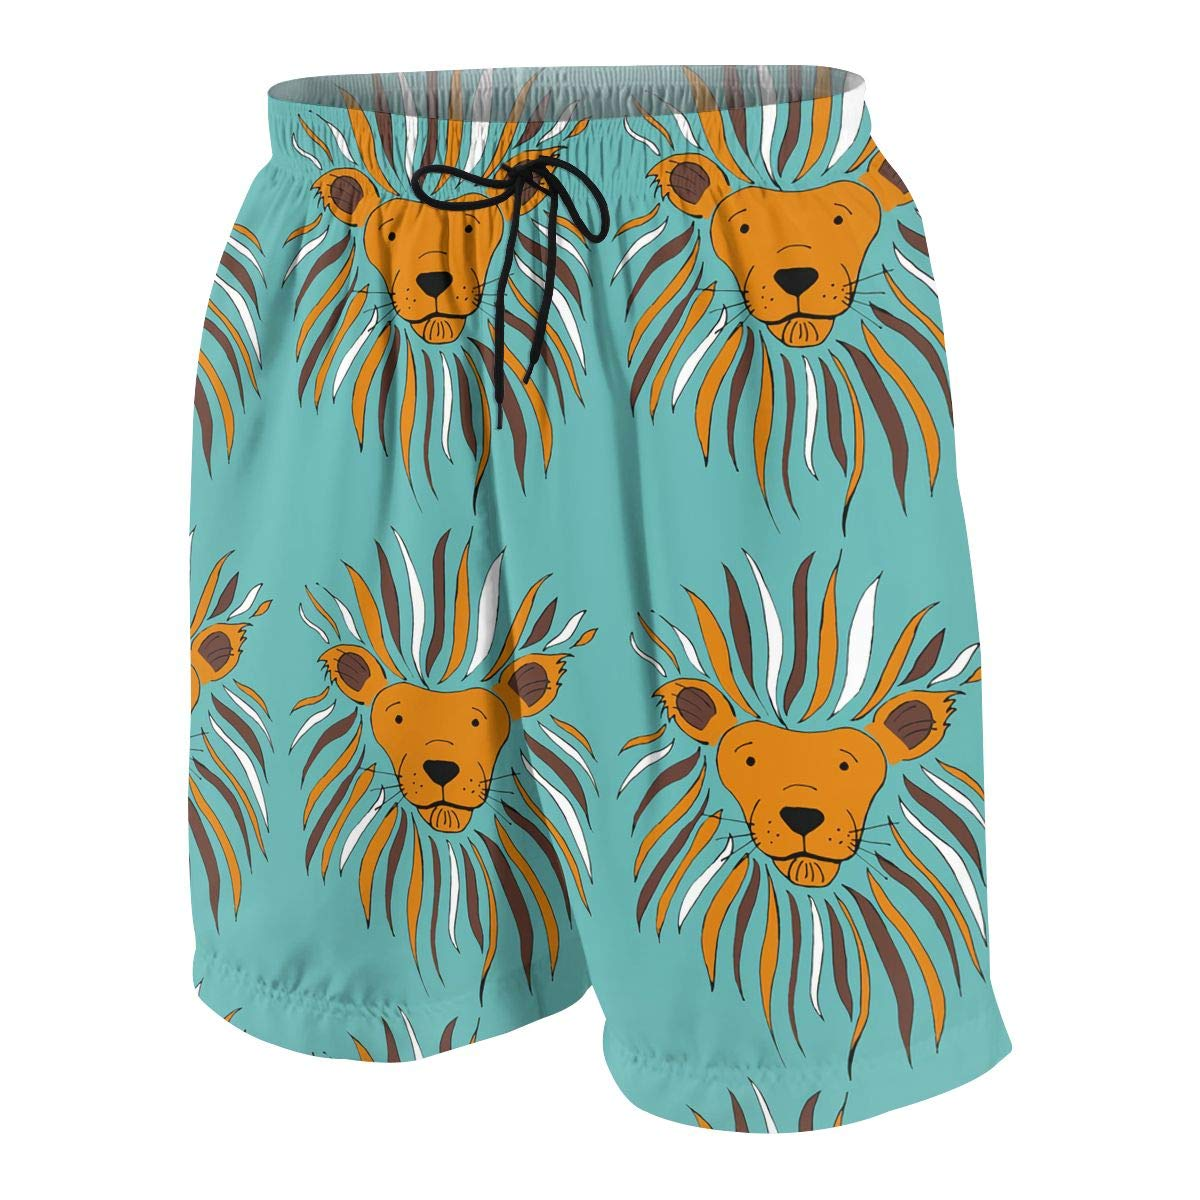 HFSST Blue Lion Cute Cool Teen Swim Trunks Bathing Suit Shorts Board Beach